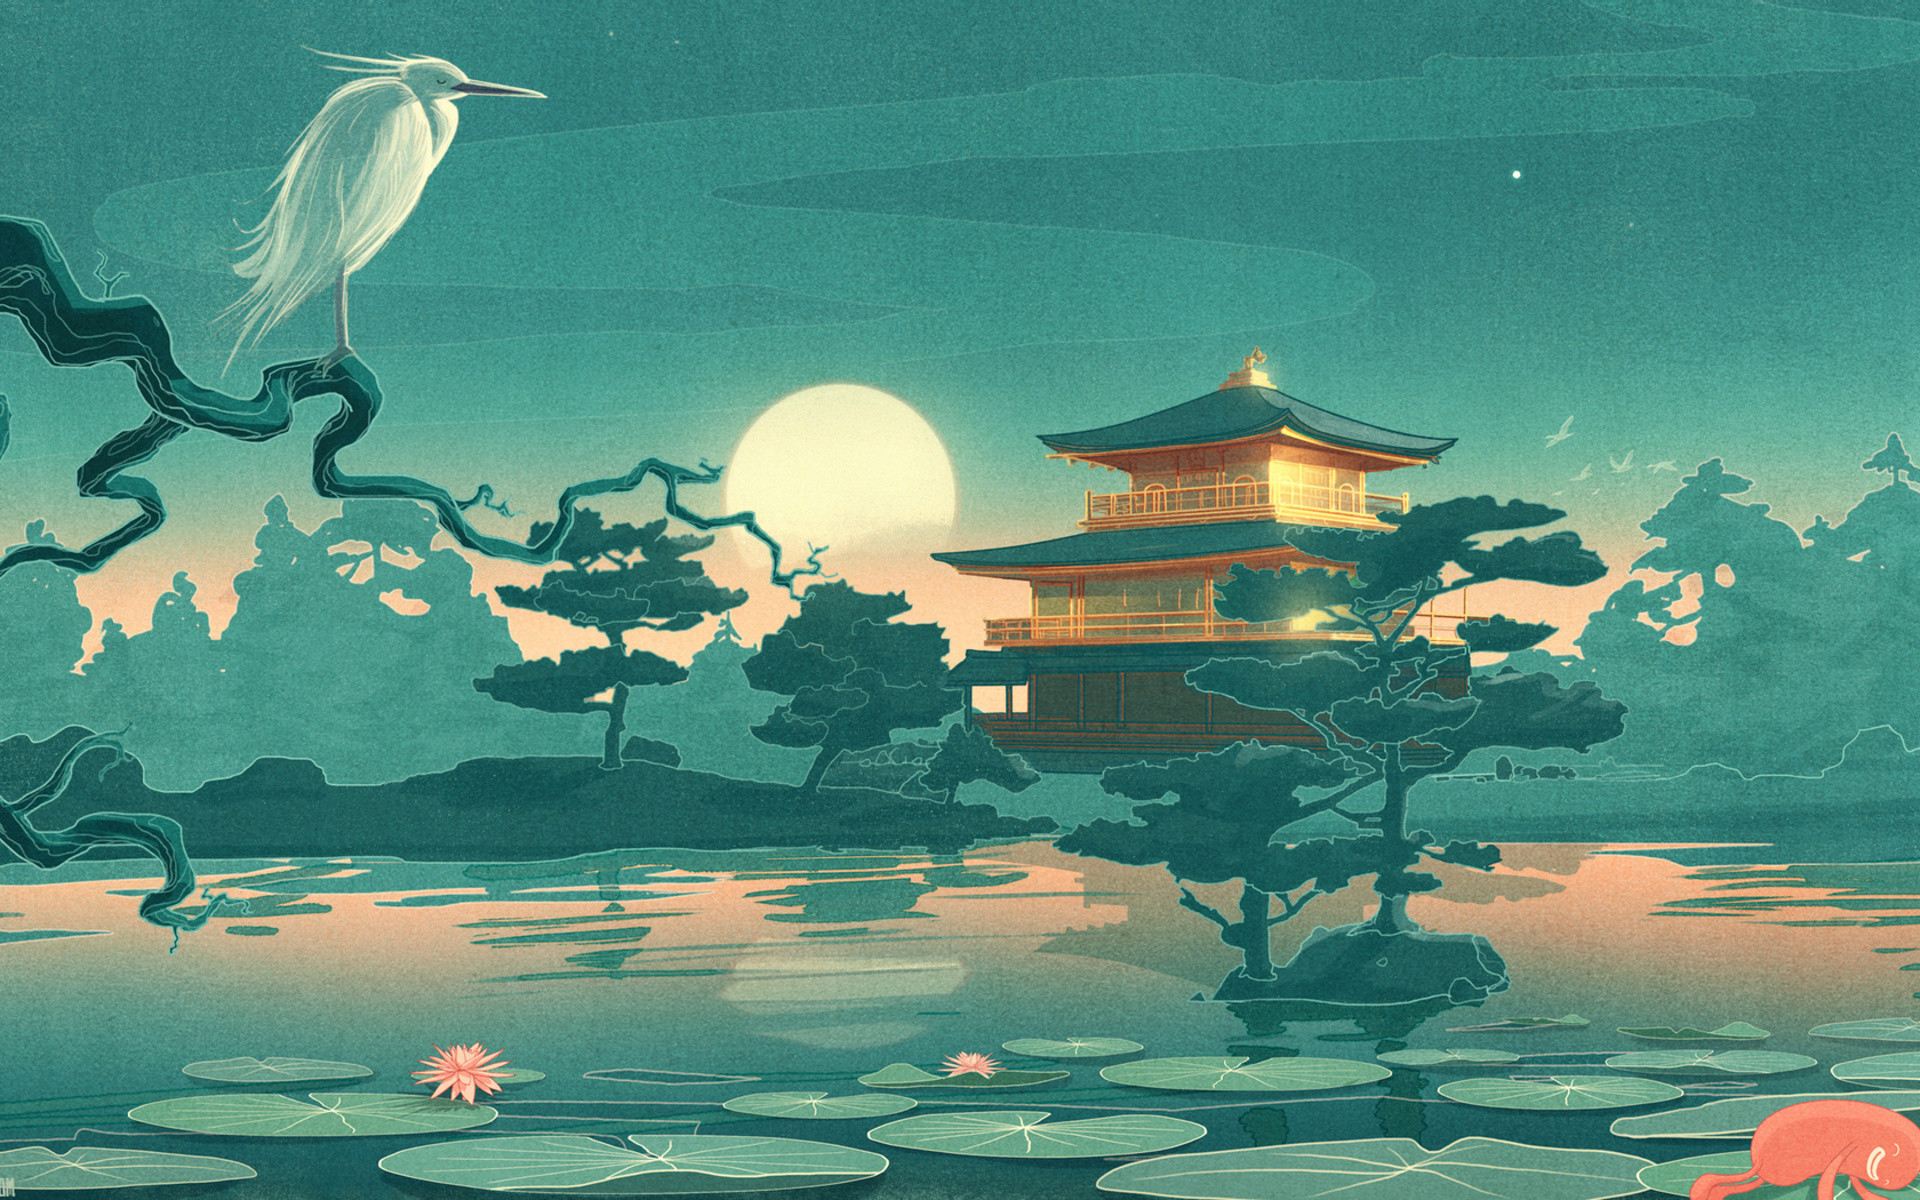 Res: 1920x1200, Thefoxisblack_com asian oriental cultural lakes ponds gardens nature art  animals birds crane flowers lily lilies sky moon reflection mood  architecture ...